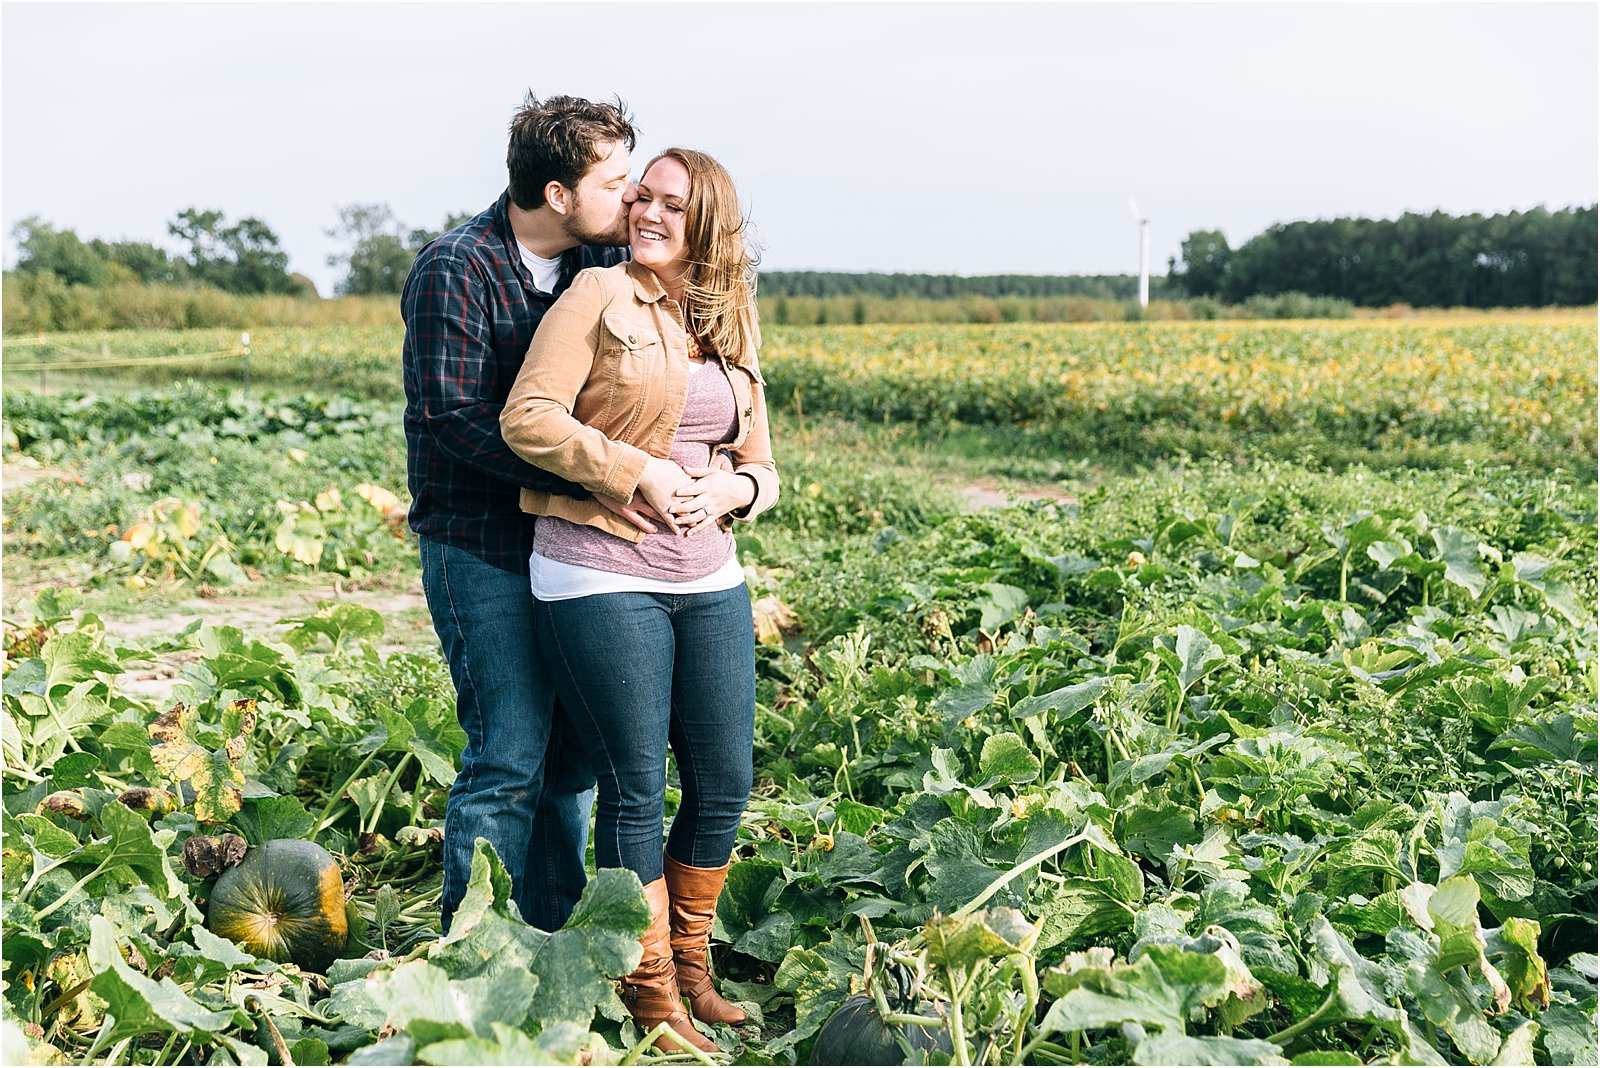 jessica_ryan_photography_pumpkin_patch_engagement_portraits_fall_october_engagements_virginia_beach_chesapeake_0285